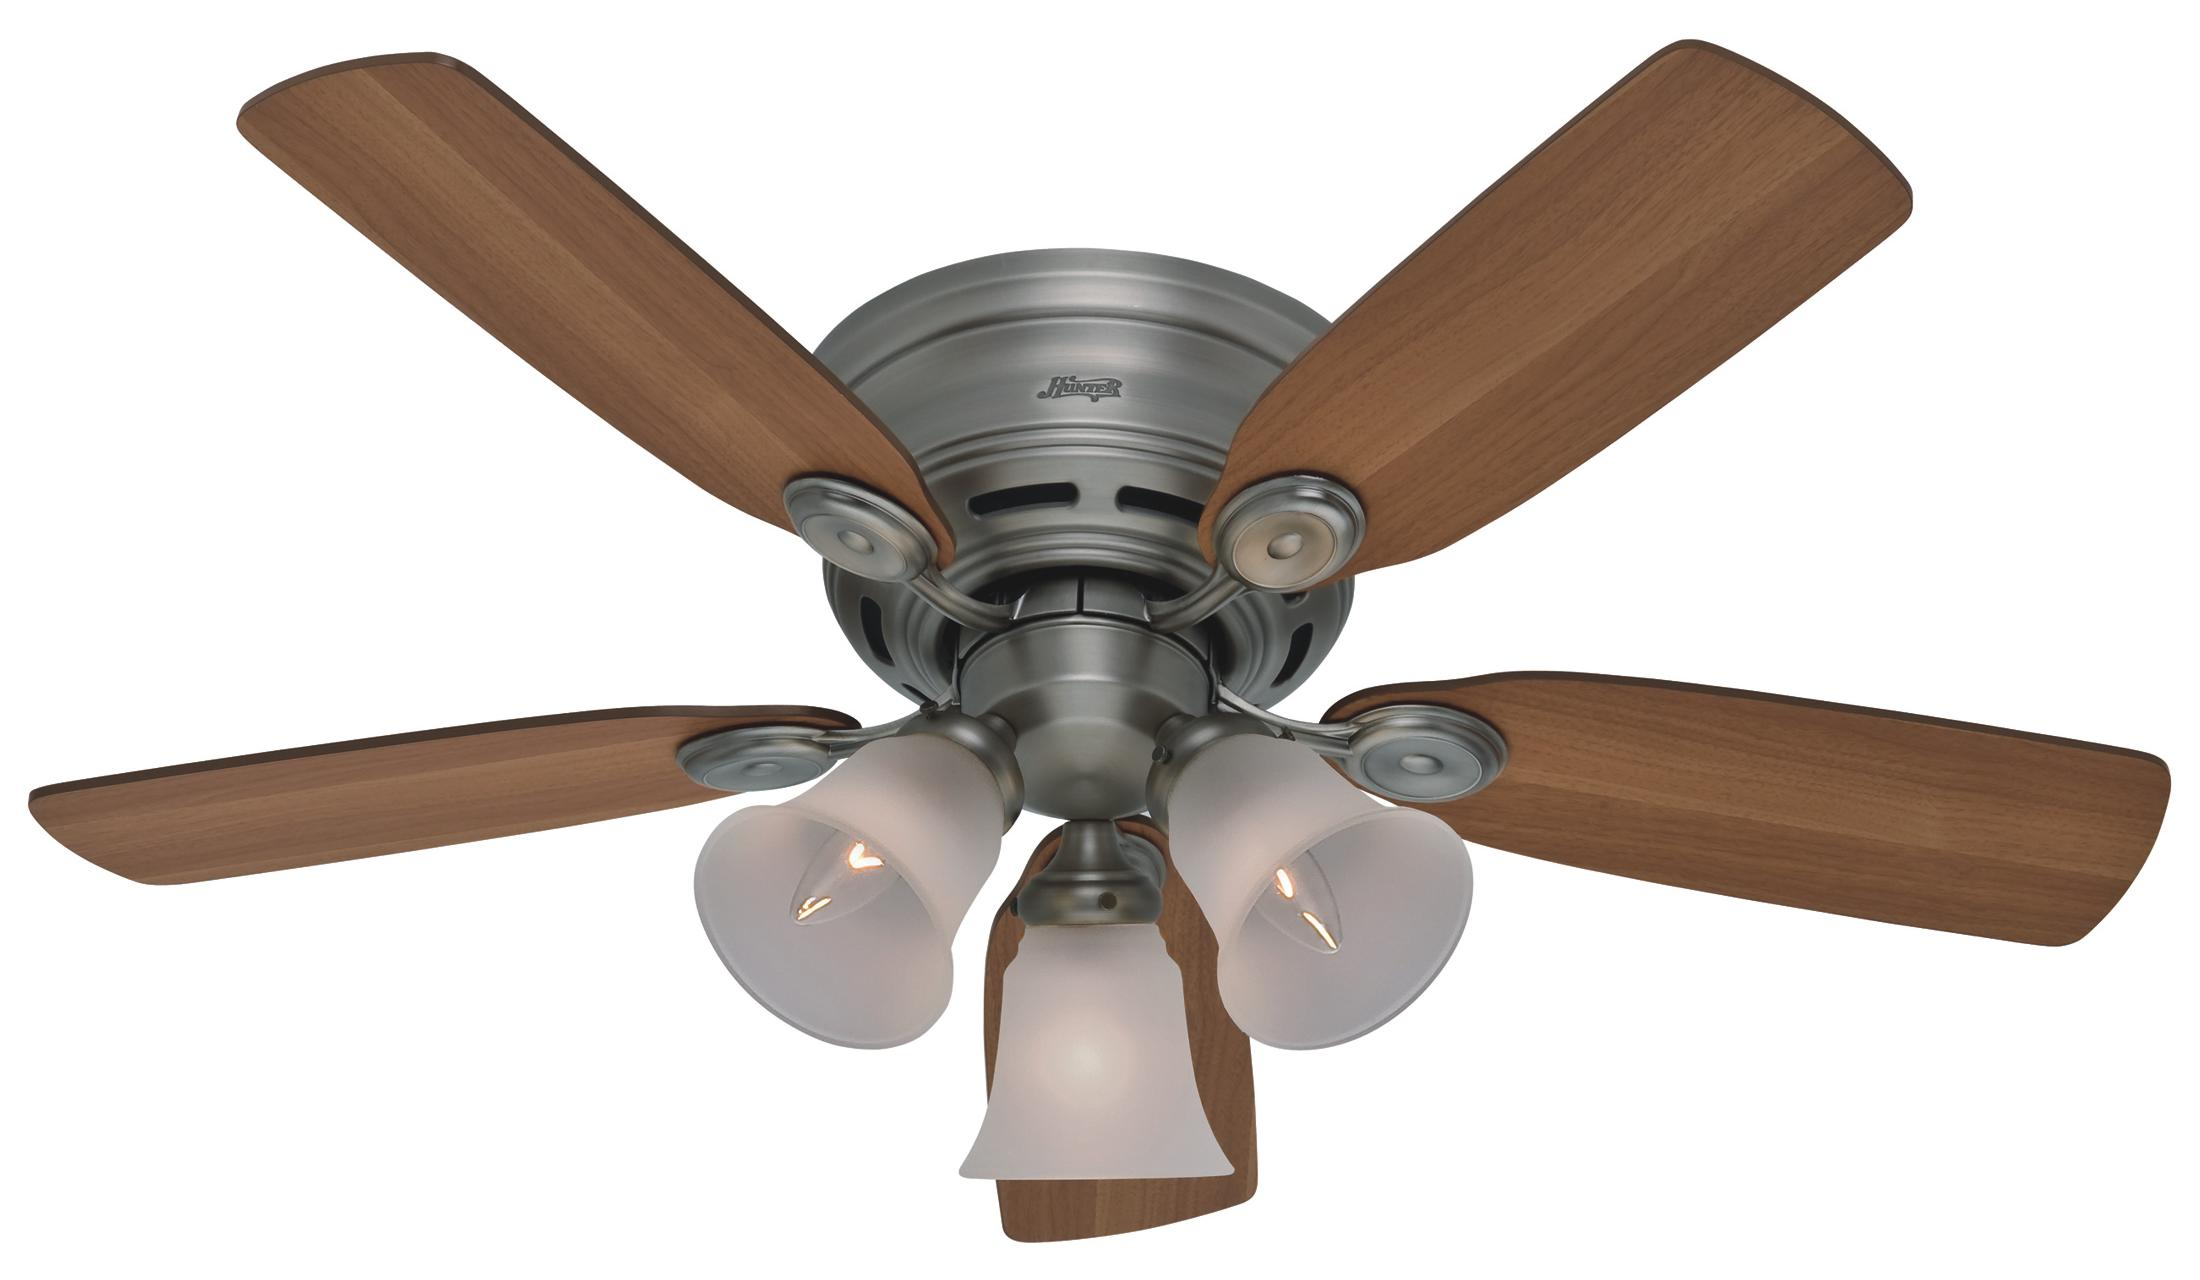 Hunting trip: a look at the earlier Hunter ceiling fan